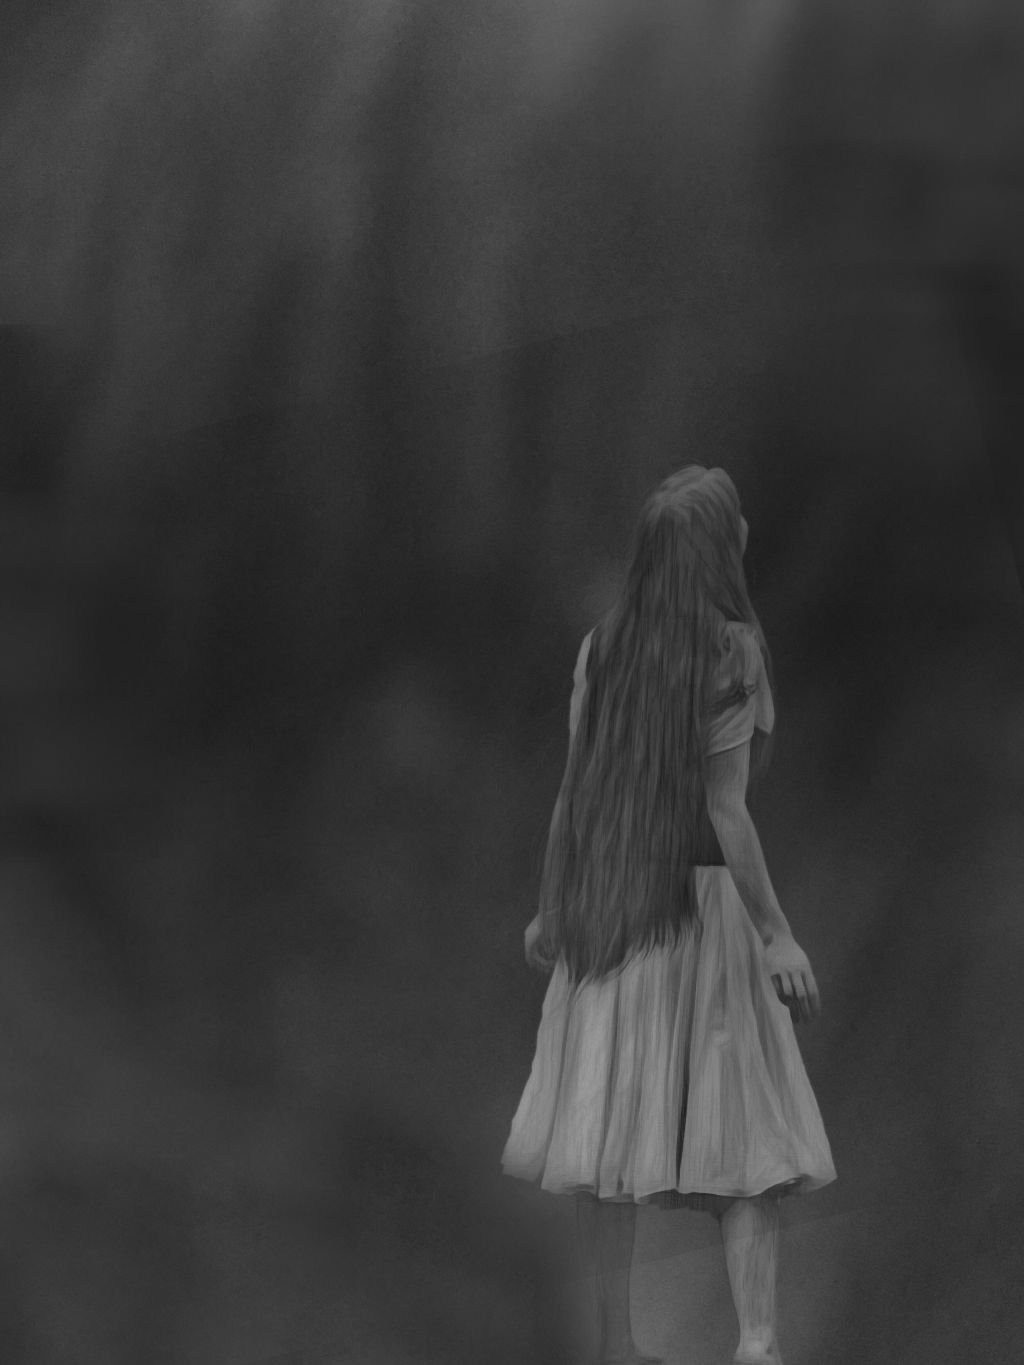 Freetoedit Gray Alone Girl Sad Ghostly Lost Blackandwhi